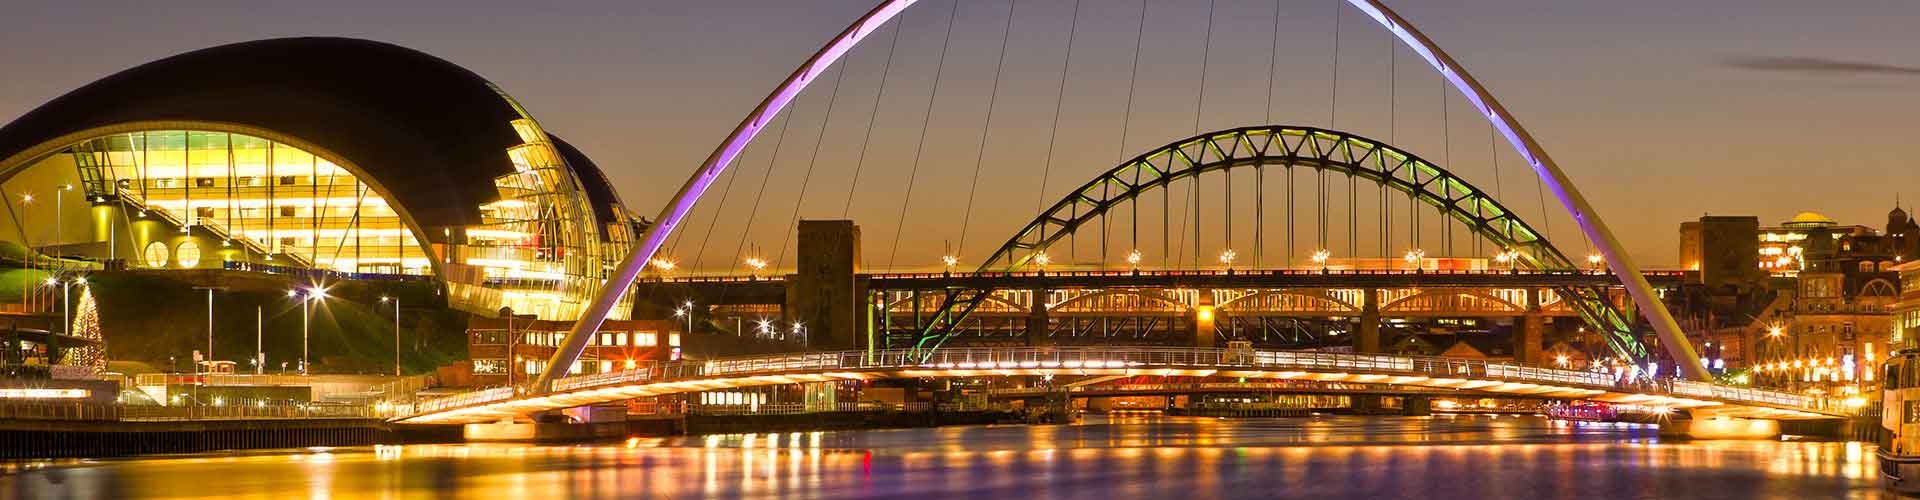 Newcastle Upon Tyne - Chambres à Newcastle Upon Tyne. Cartes pour Newcastle Upon Tyne, photos et commentaires pour chaque chambre à Newcastle Upon Tyne.